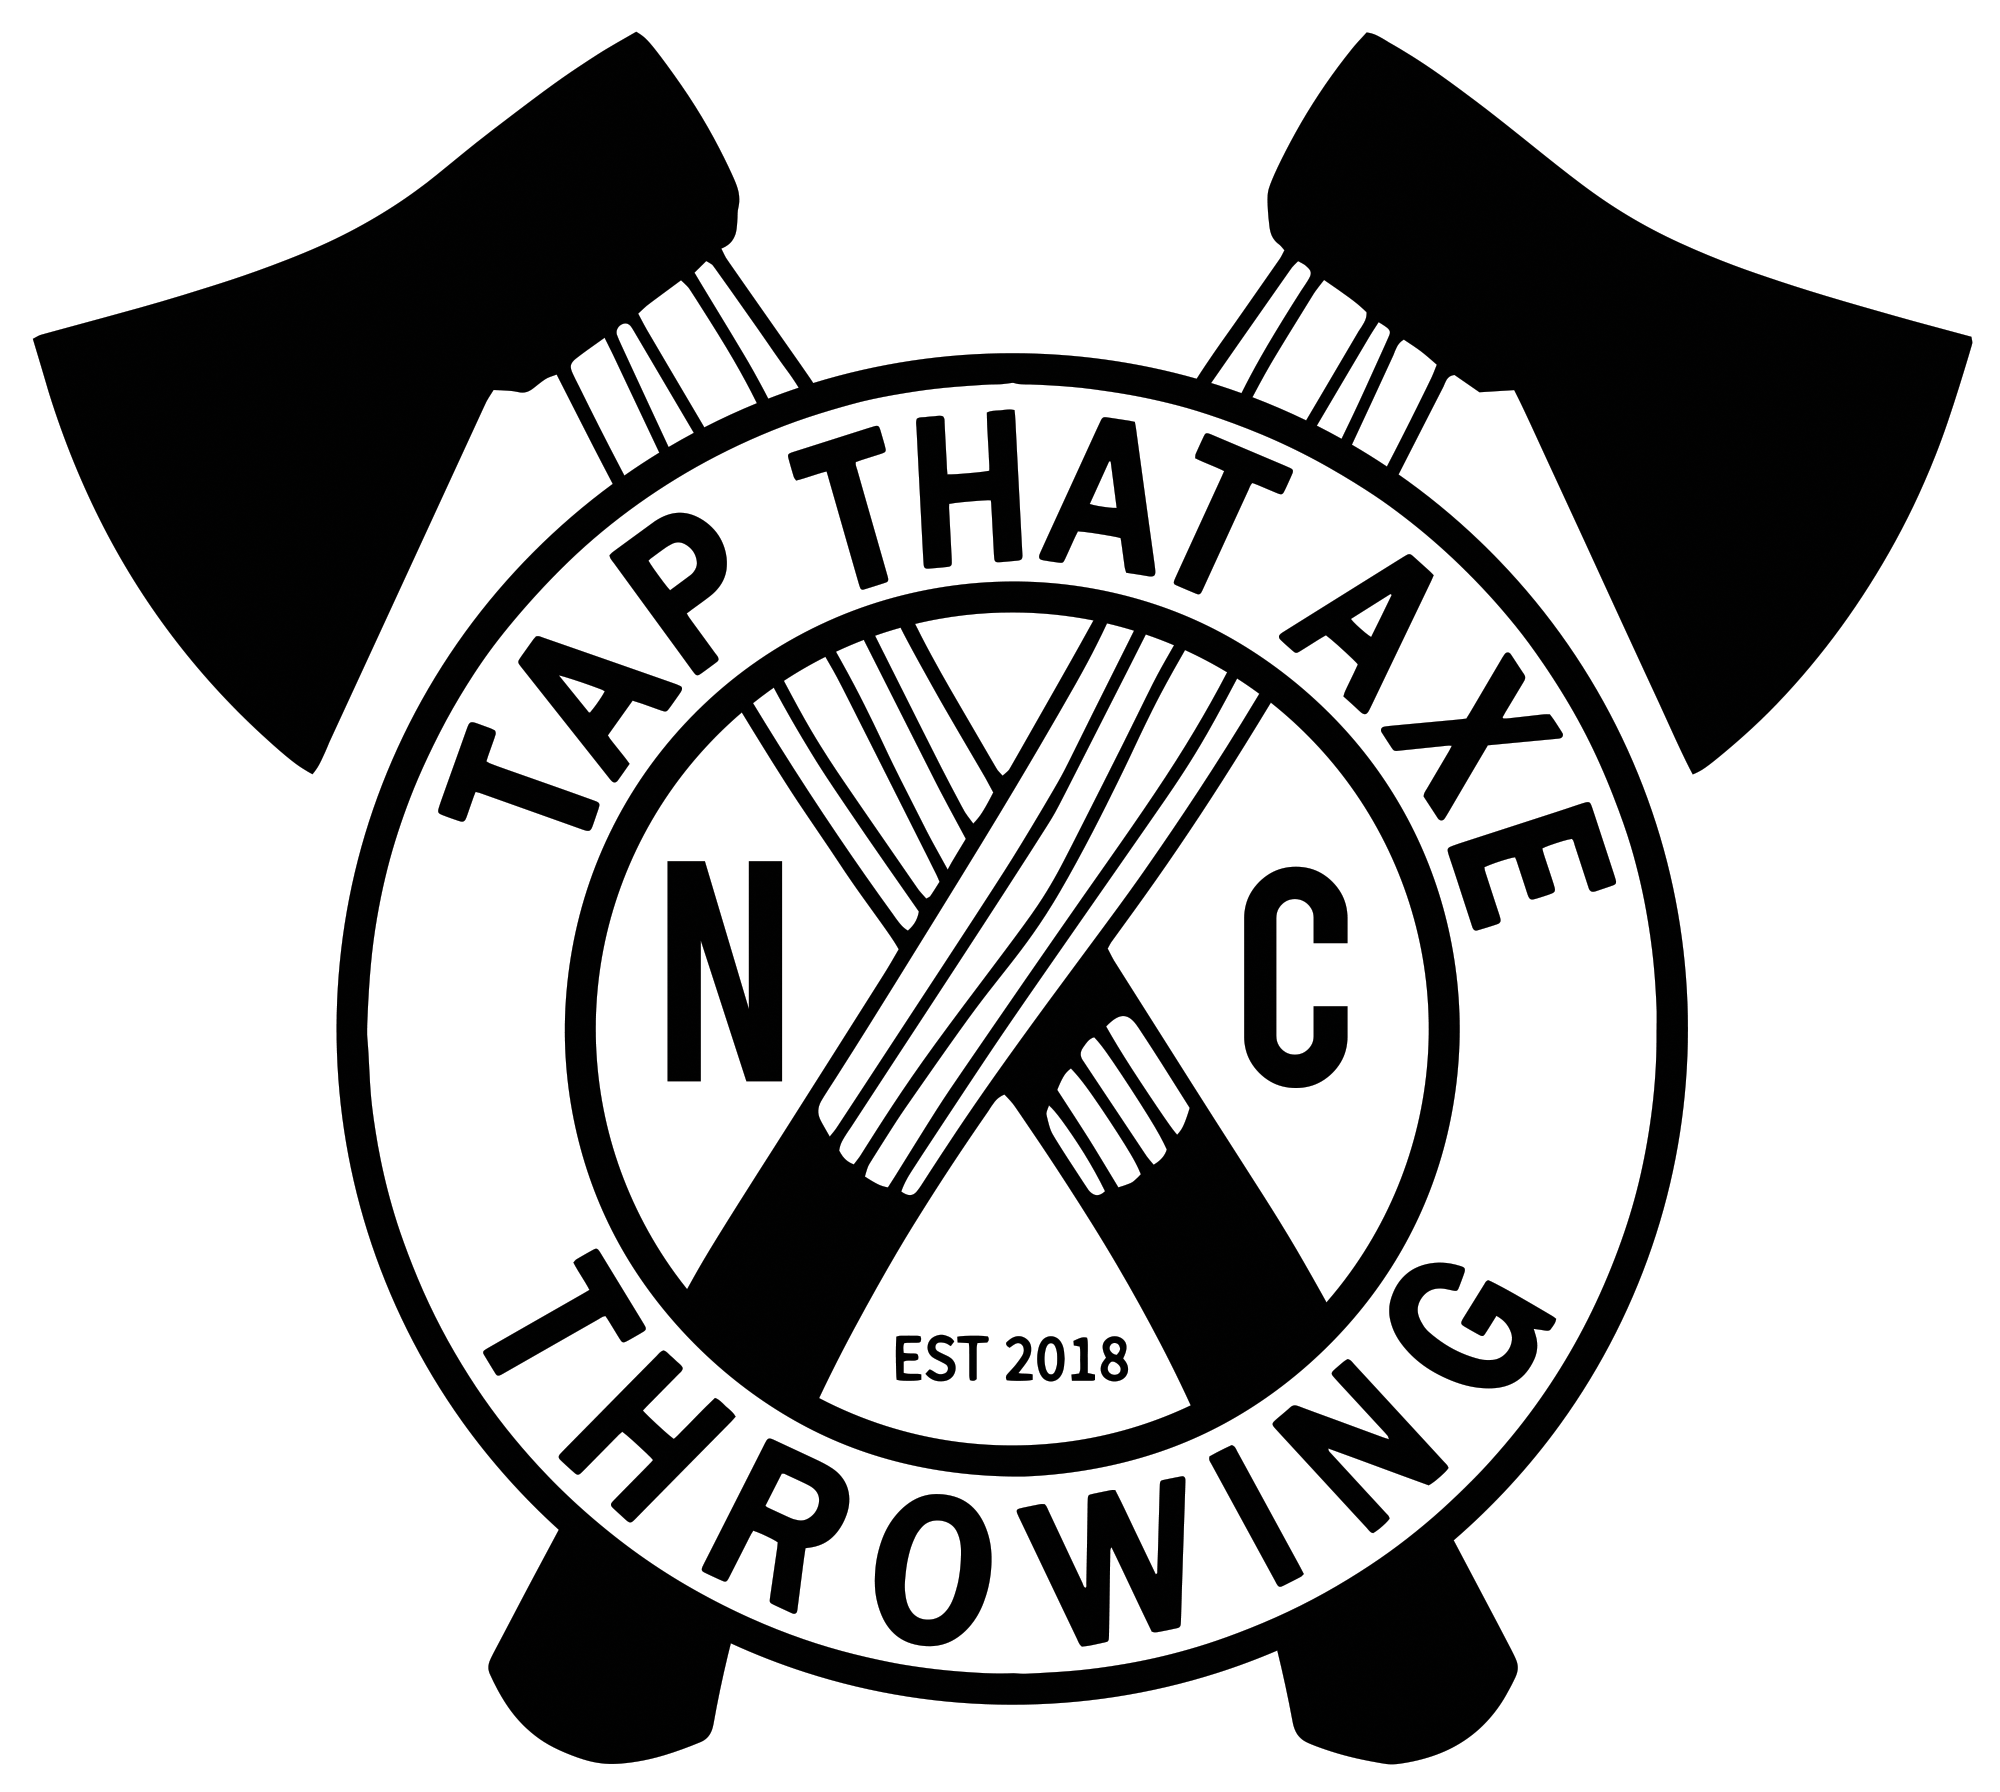 Tap That Axe Throwing